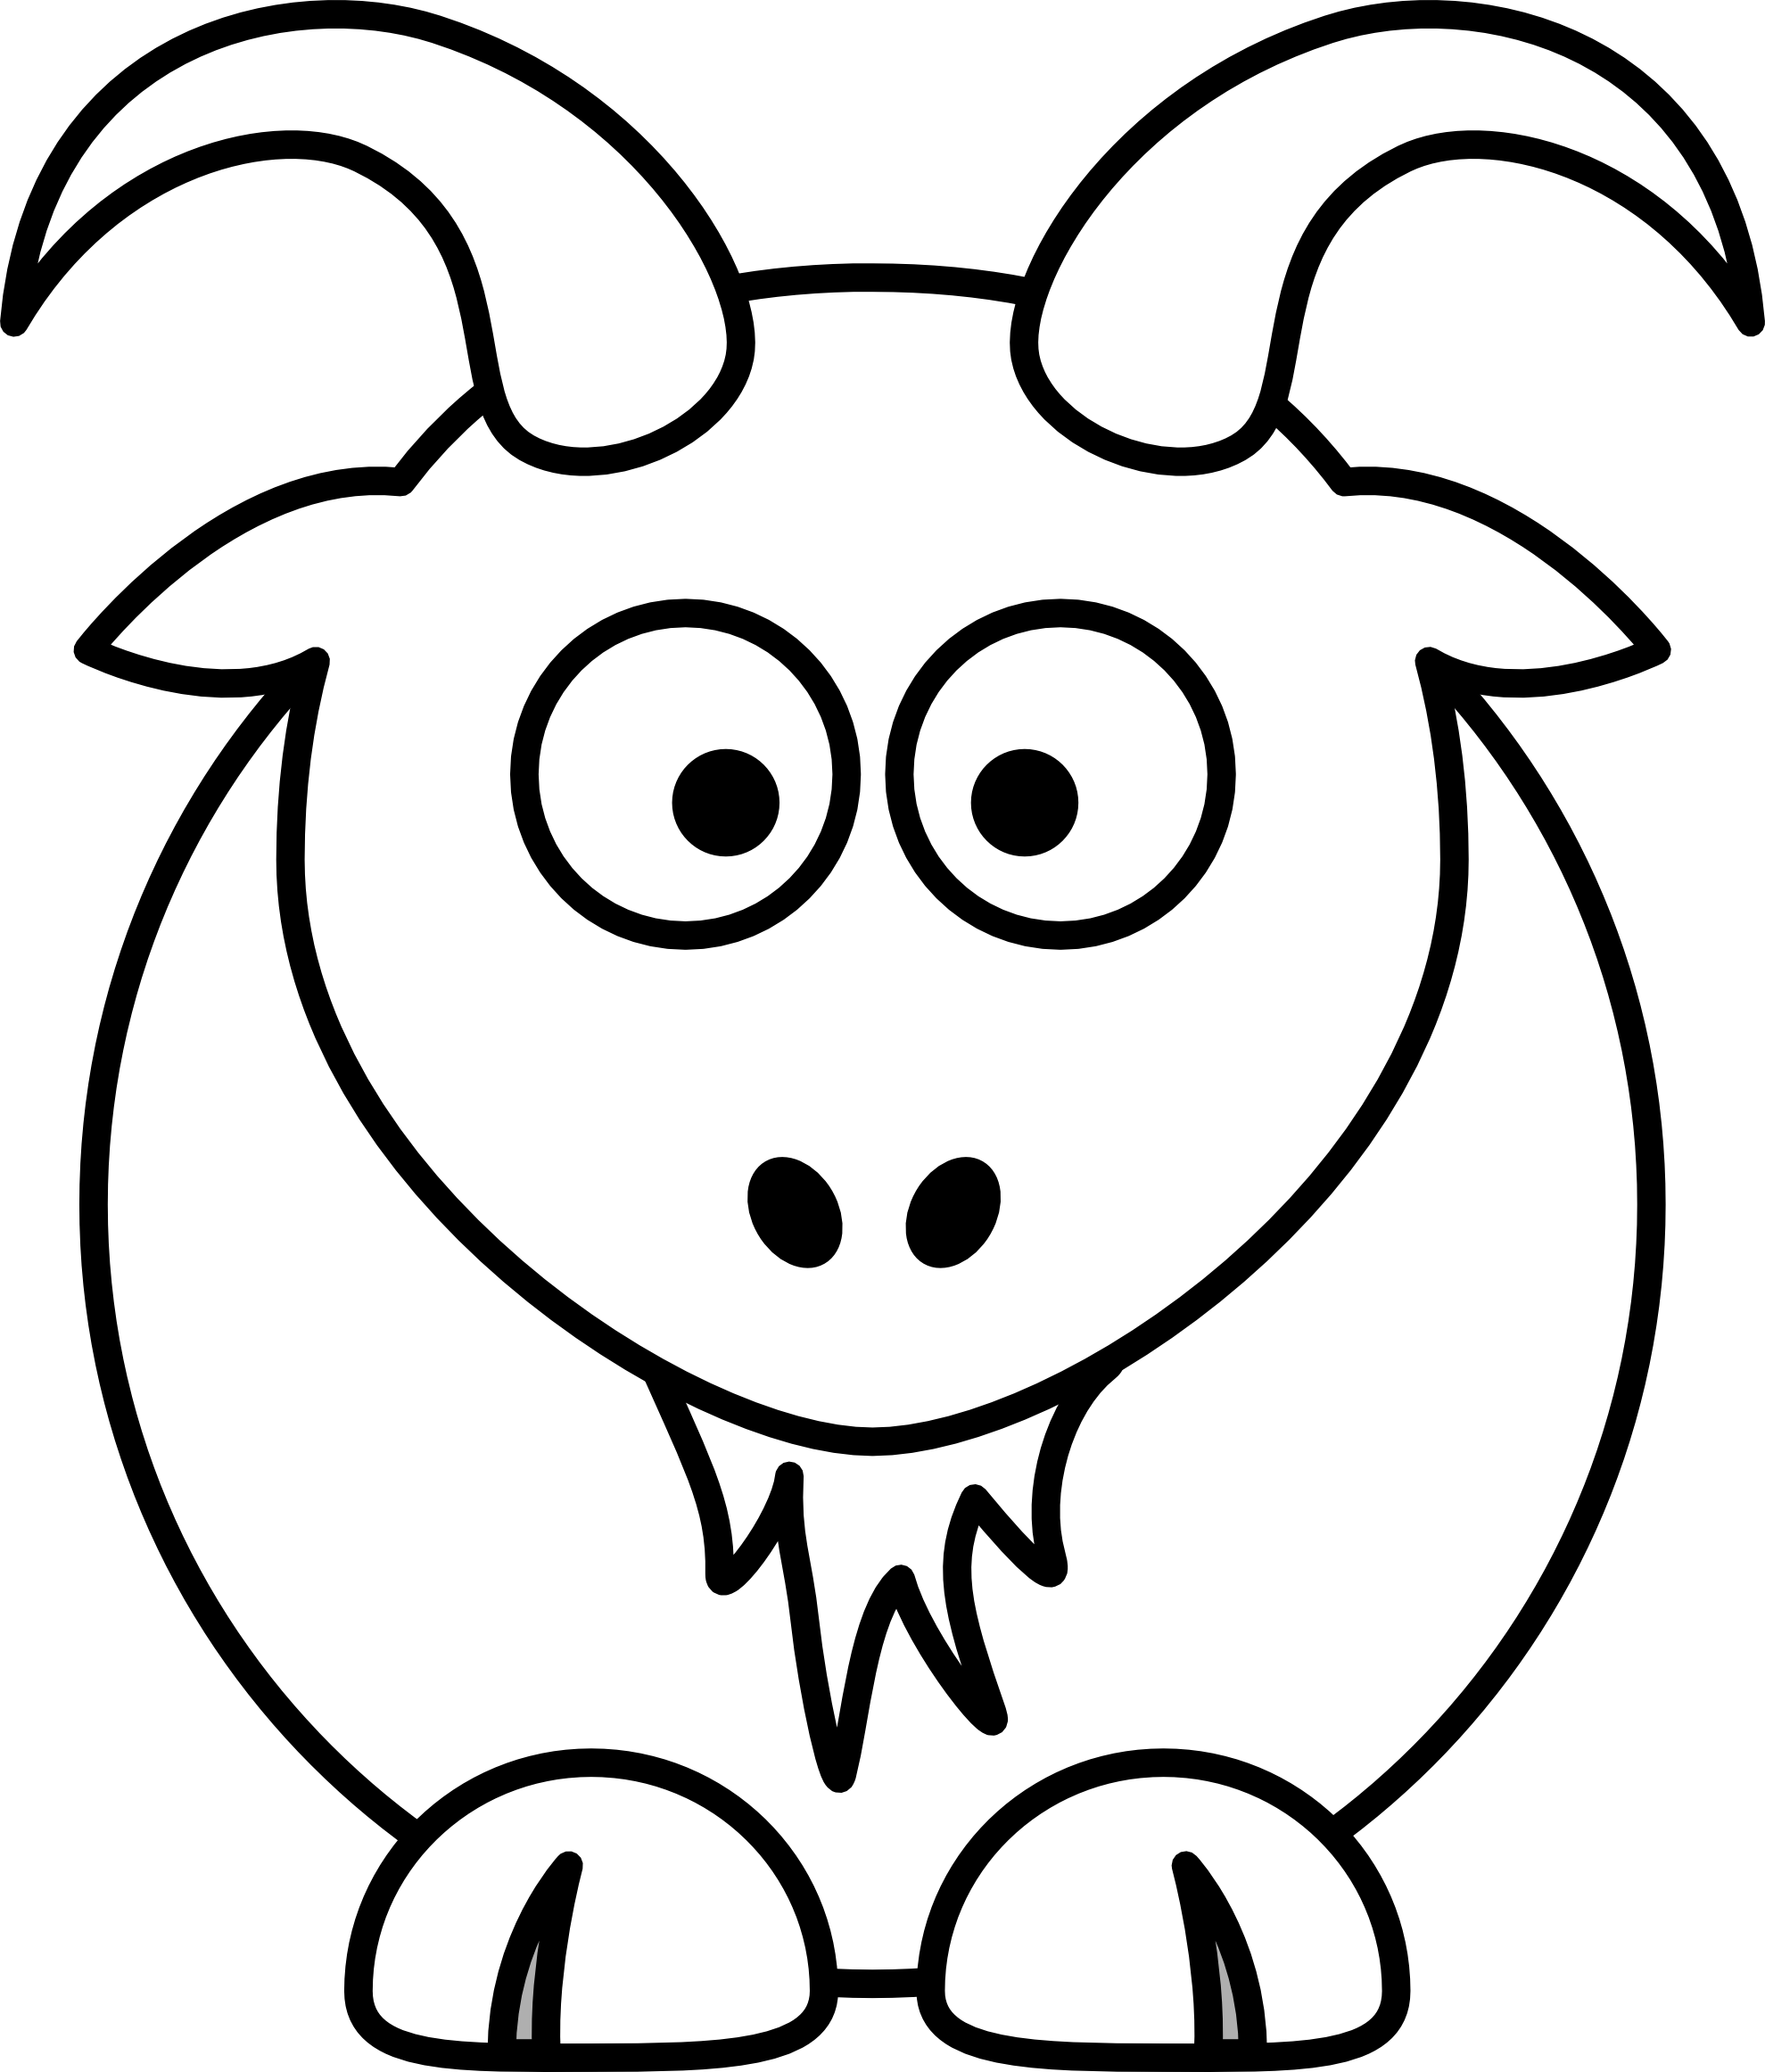 Goat clipart two goat. Cow drawing cartoon at